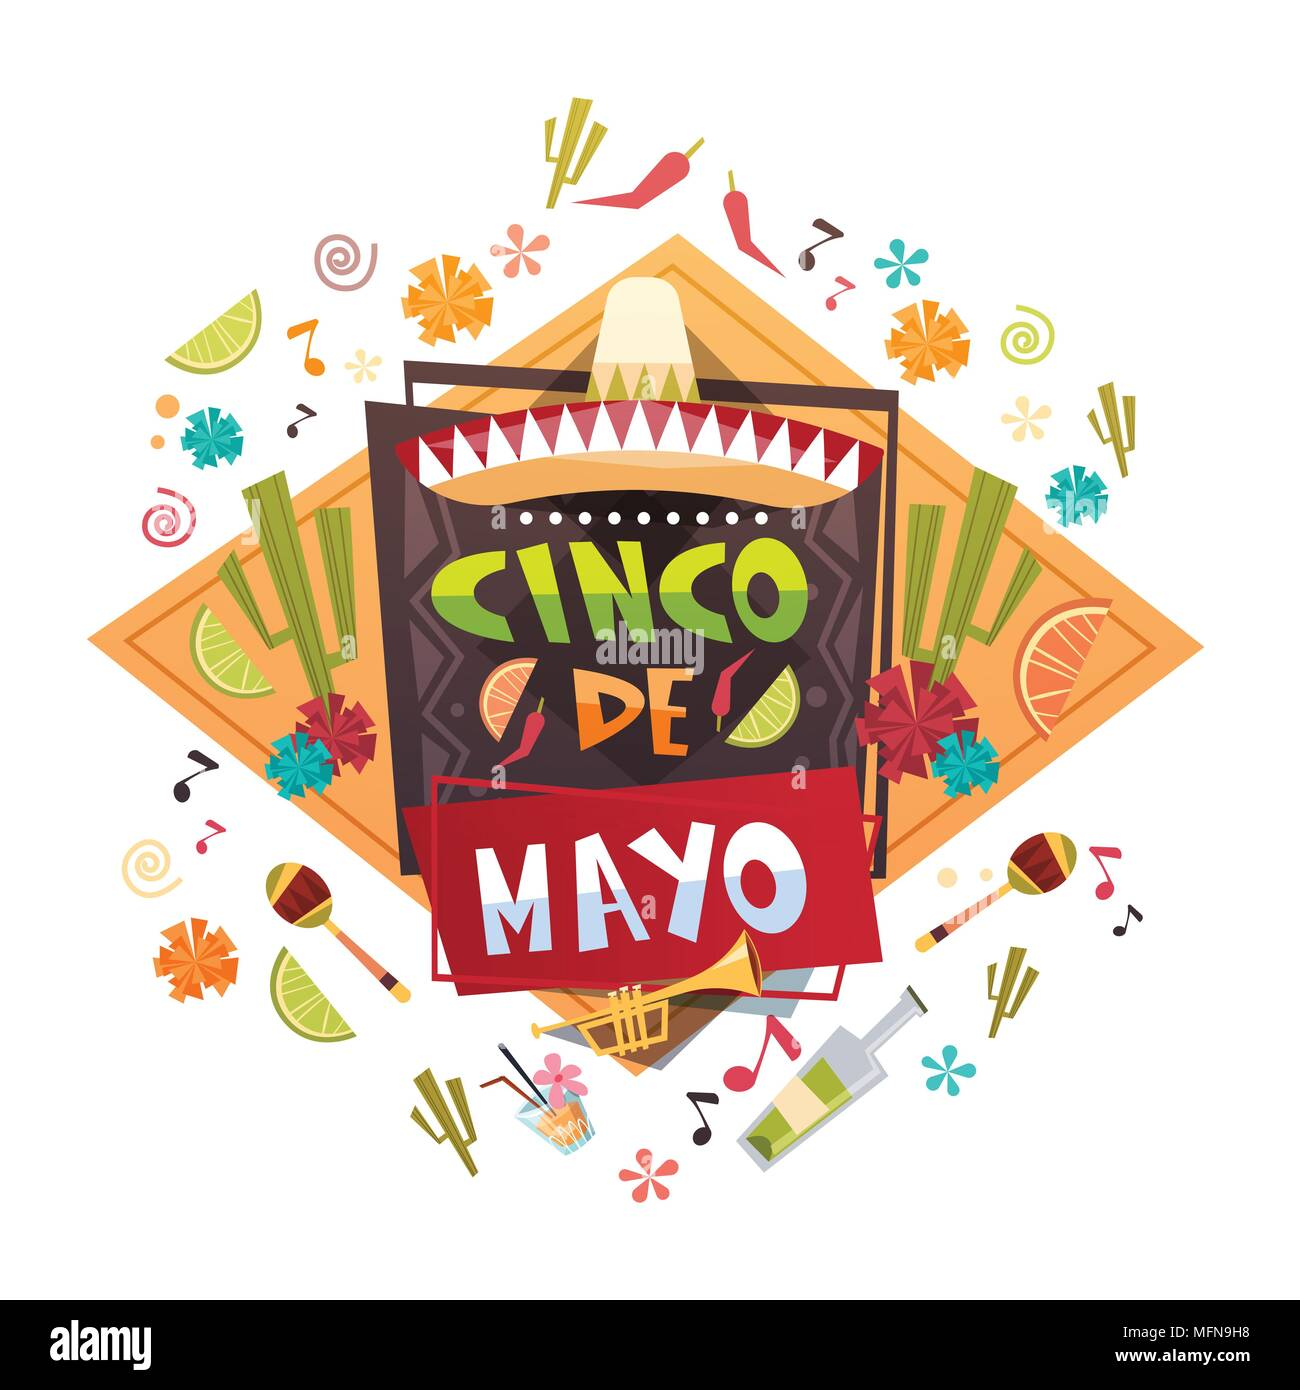 Cinco de mayo mexican holiday greeting card decoration poster design cinco de mayo mexican holiday greeting card decoration poster design m4hsunfo